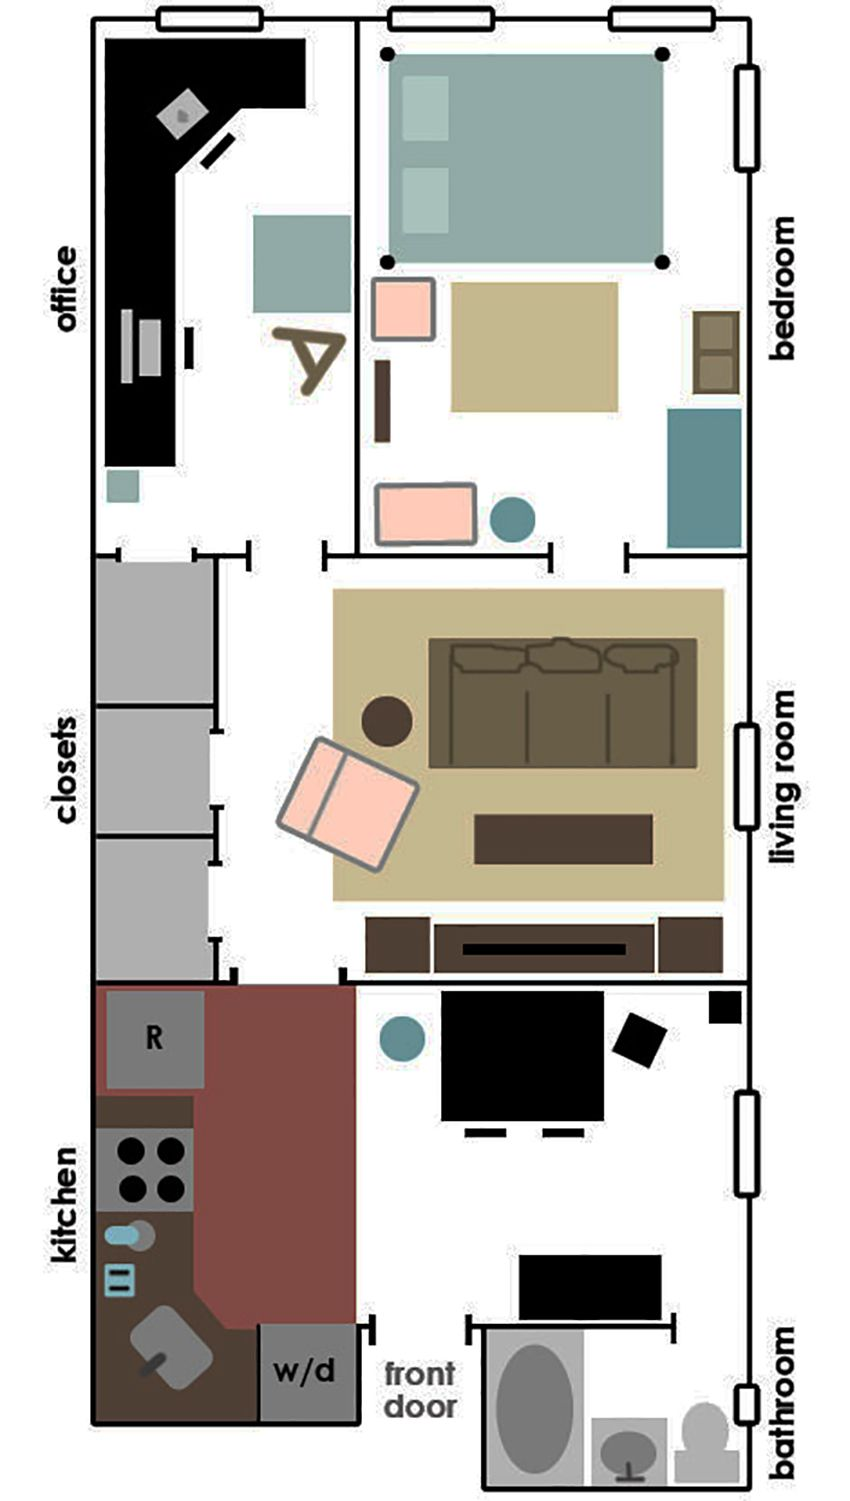 Apartment furniture layout planner home design and decor for Studio apartment furniture arrangement